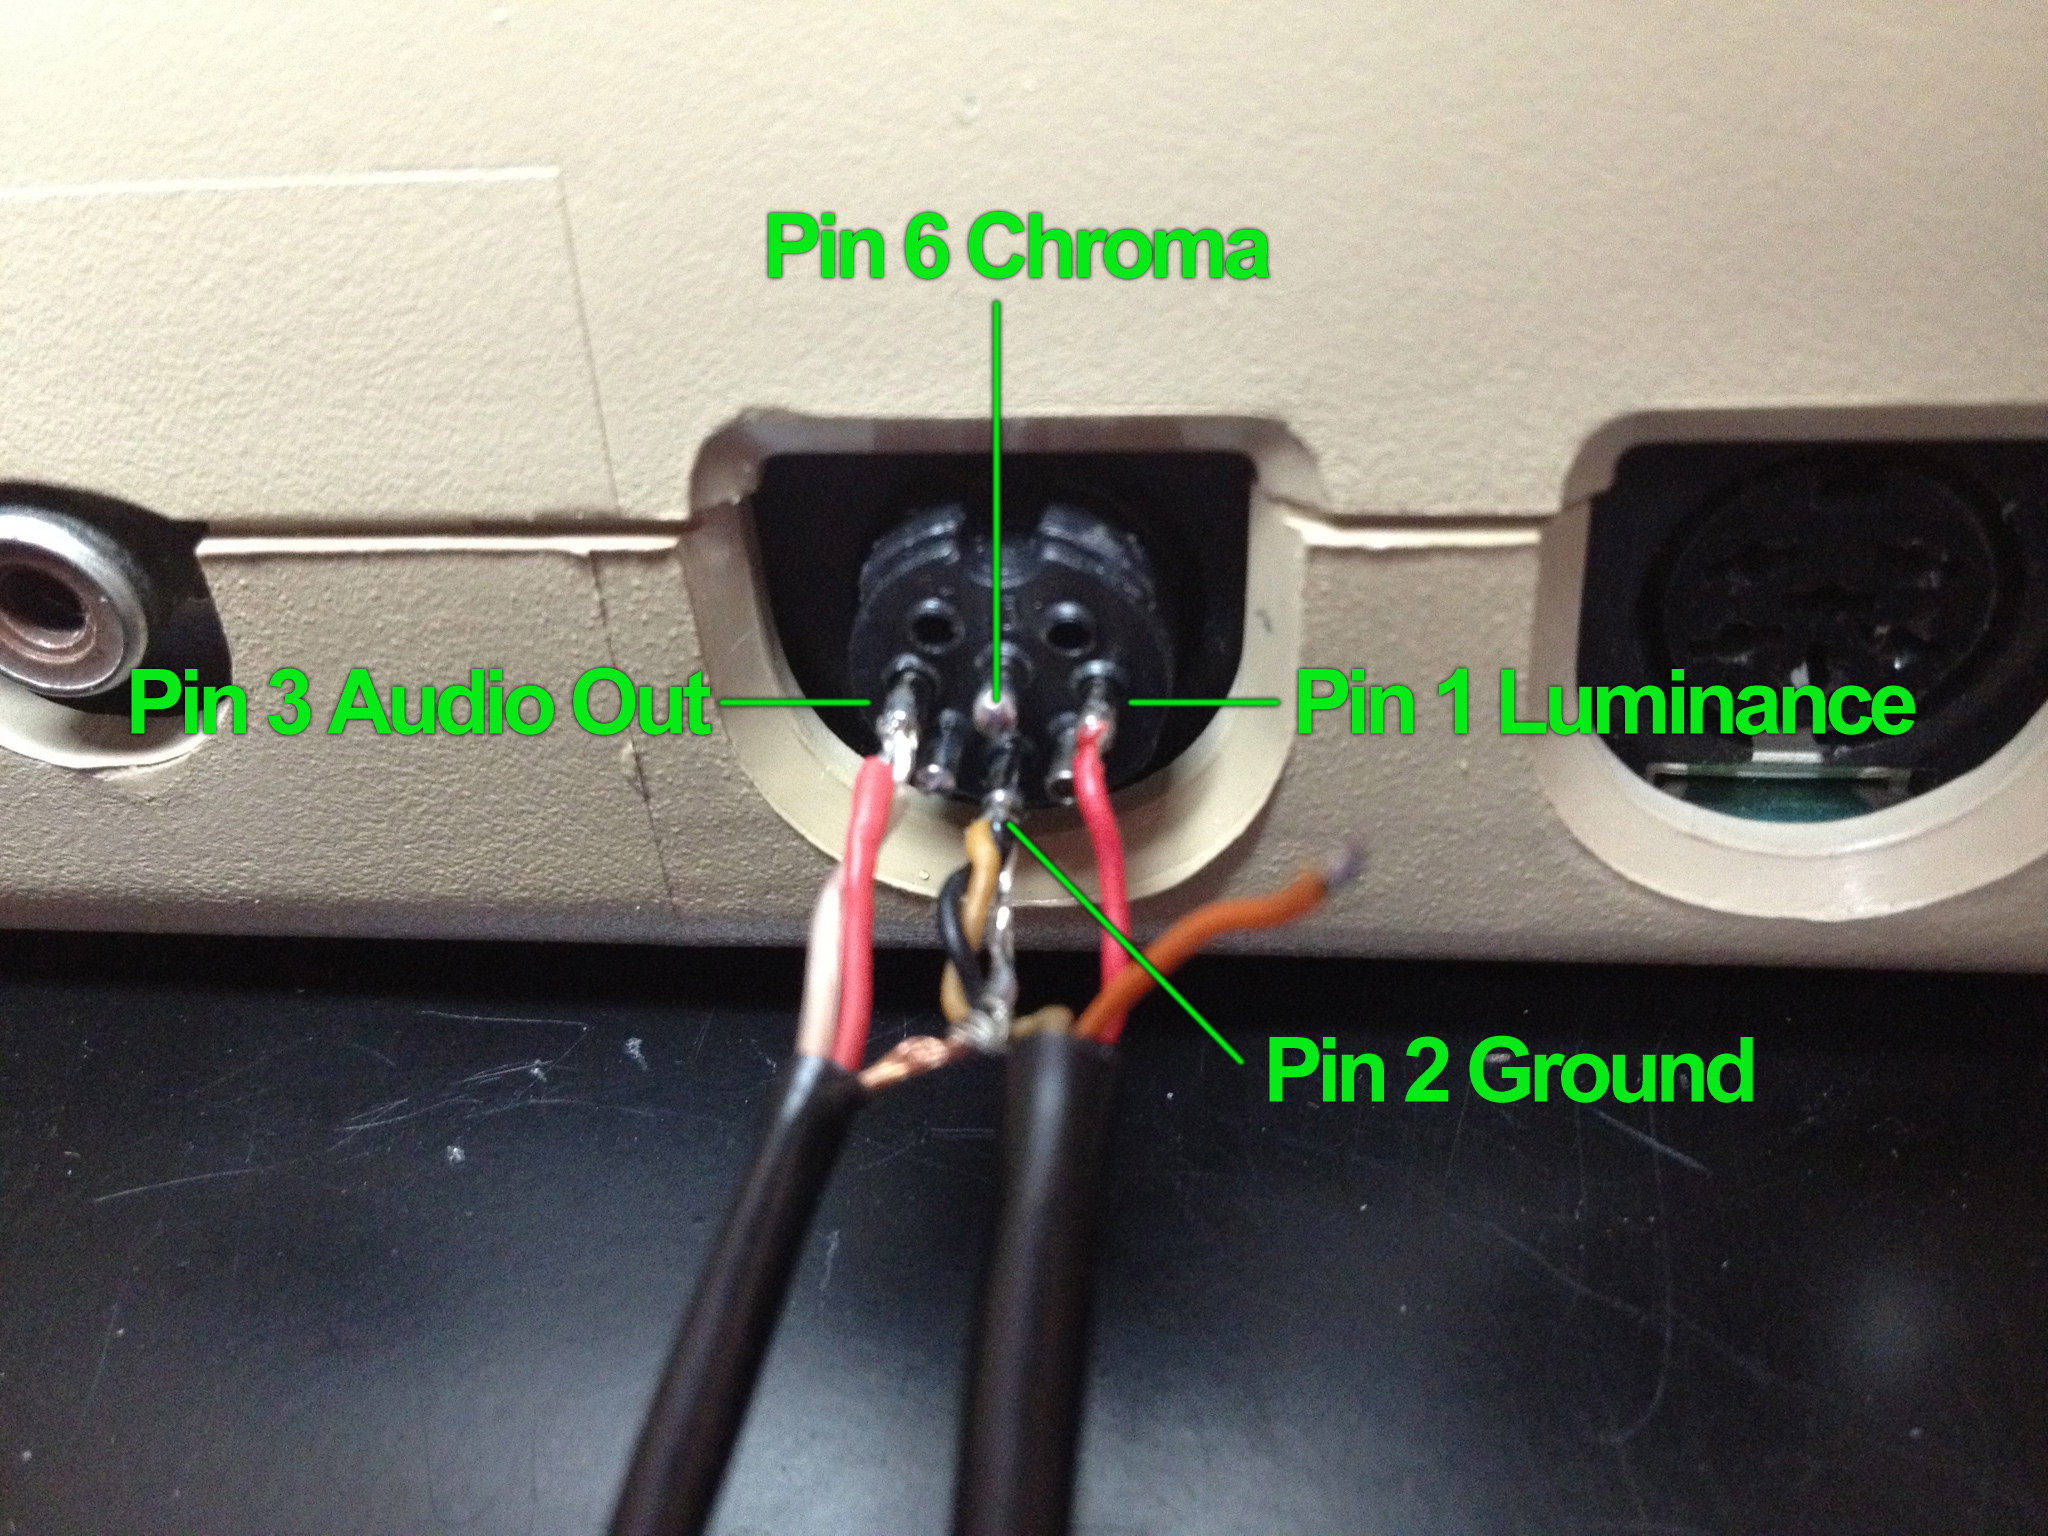 6 Pin Audio Plug Wiring Diagram | Schematic Diagram Femal Pin Trailer Plug Wiring Diagram on